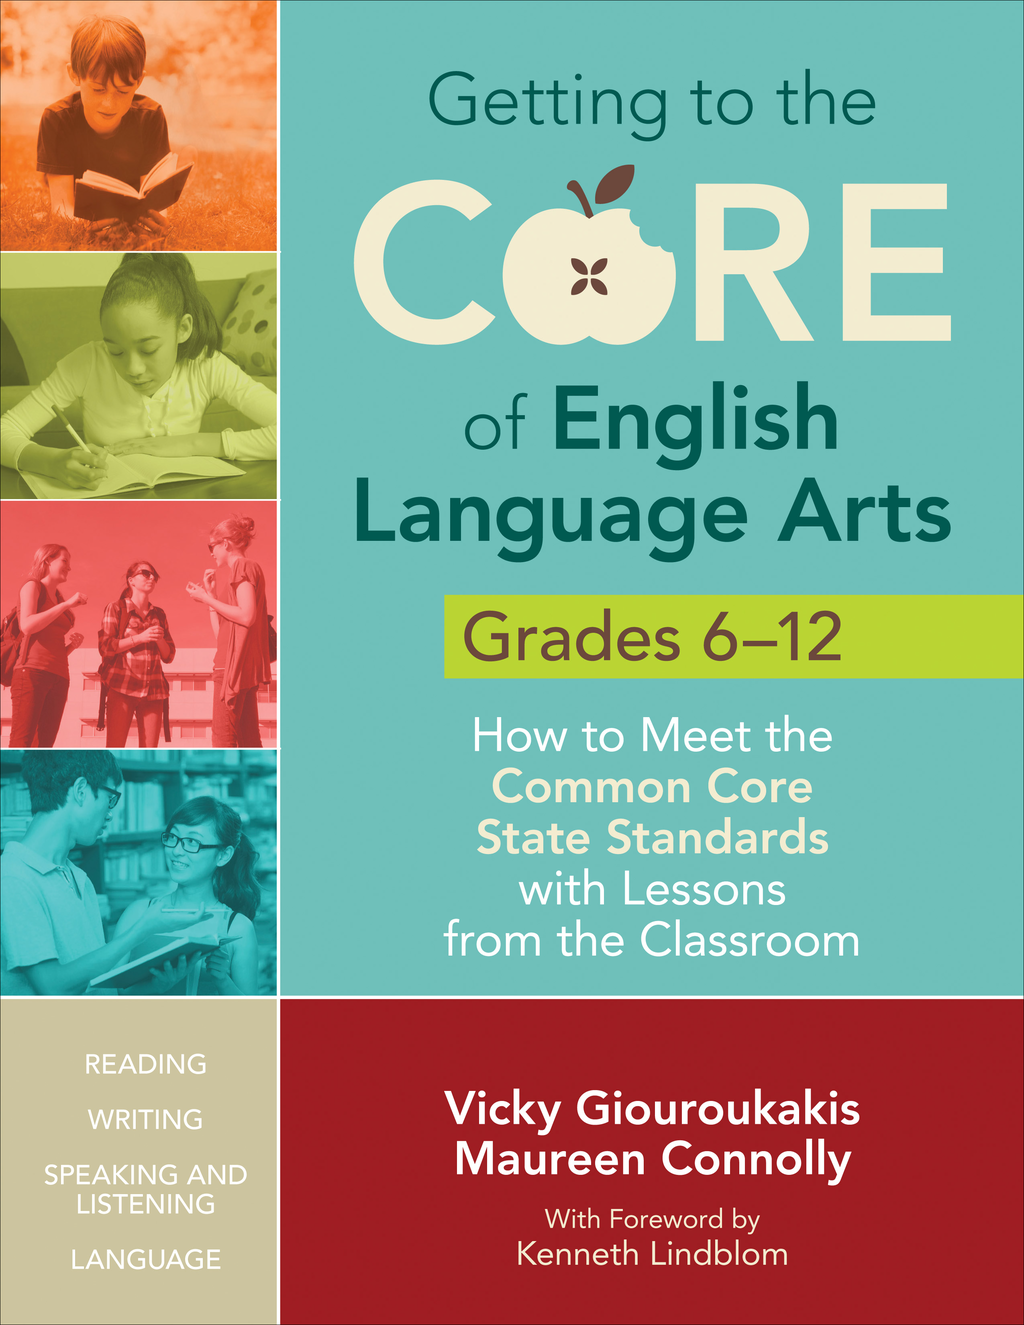 Getting to the Core of English Language Arts, Grades 6-12